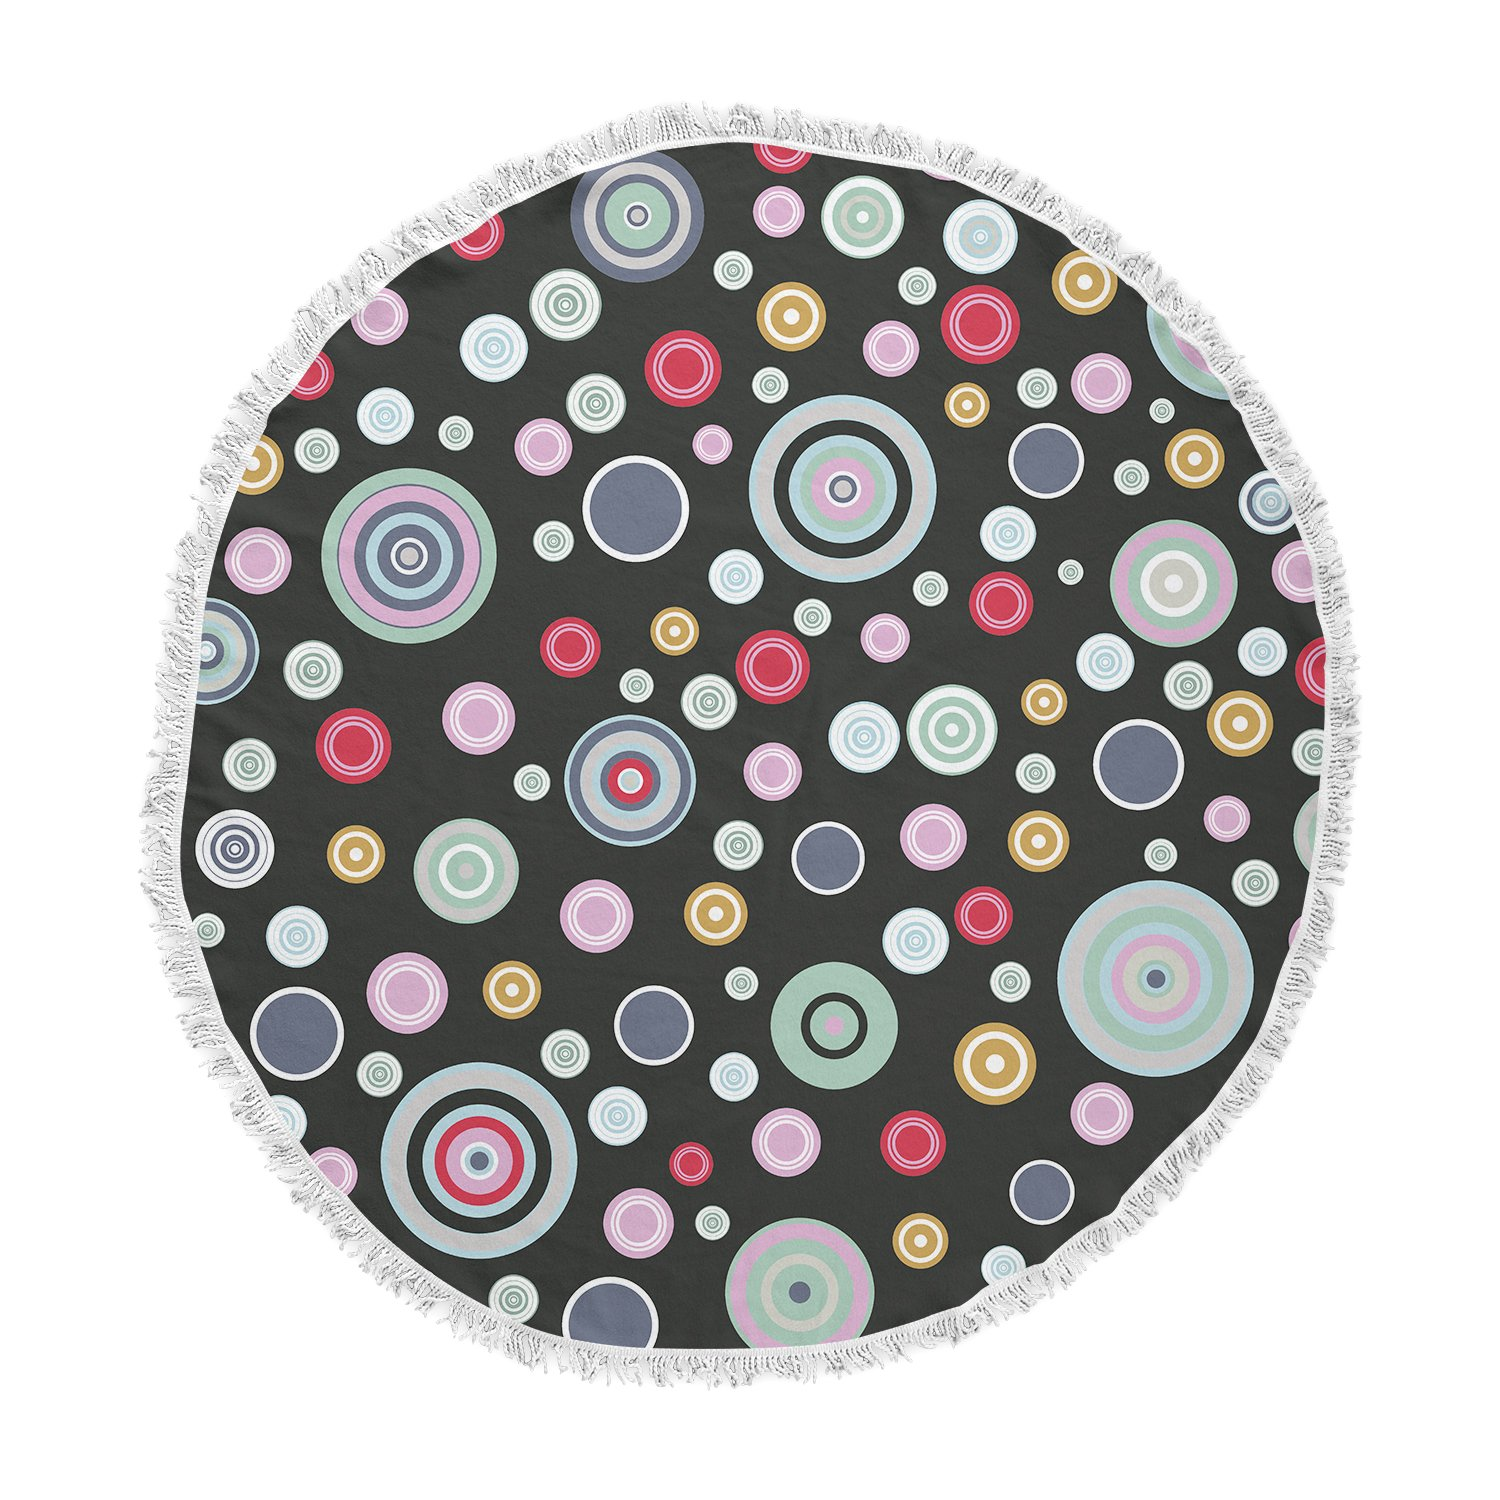 Kess InHouse Suzanne Carter Circle II Black Multicolor Round Beach Towel Blanket